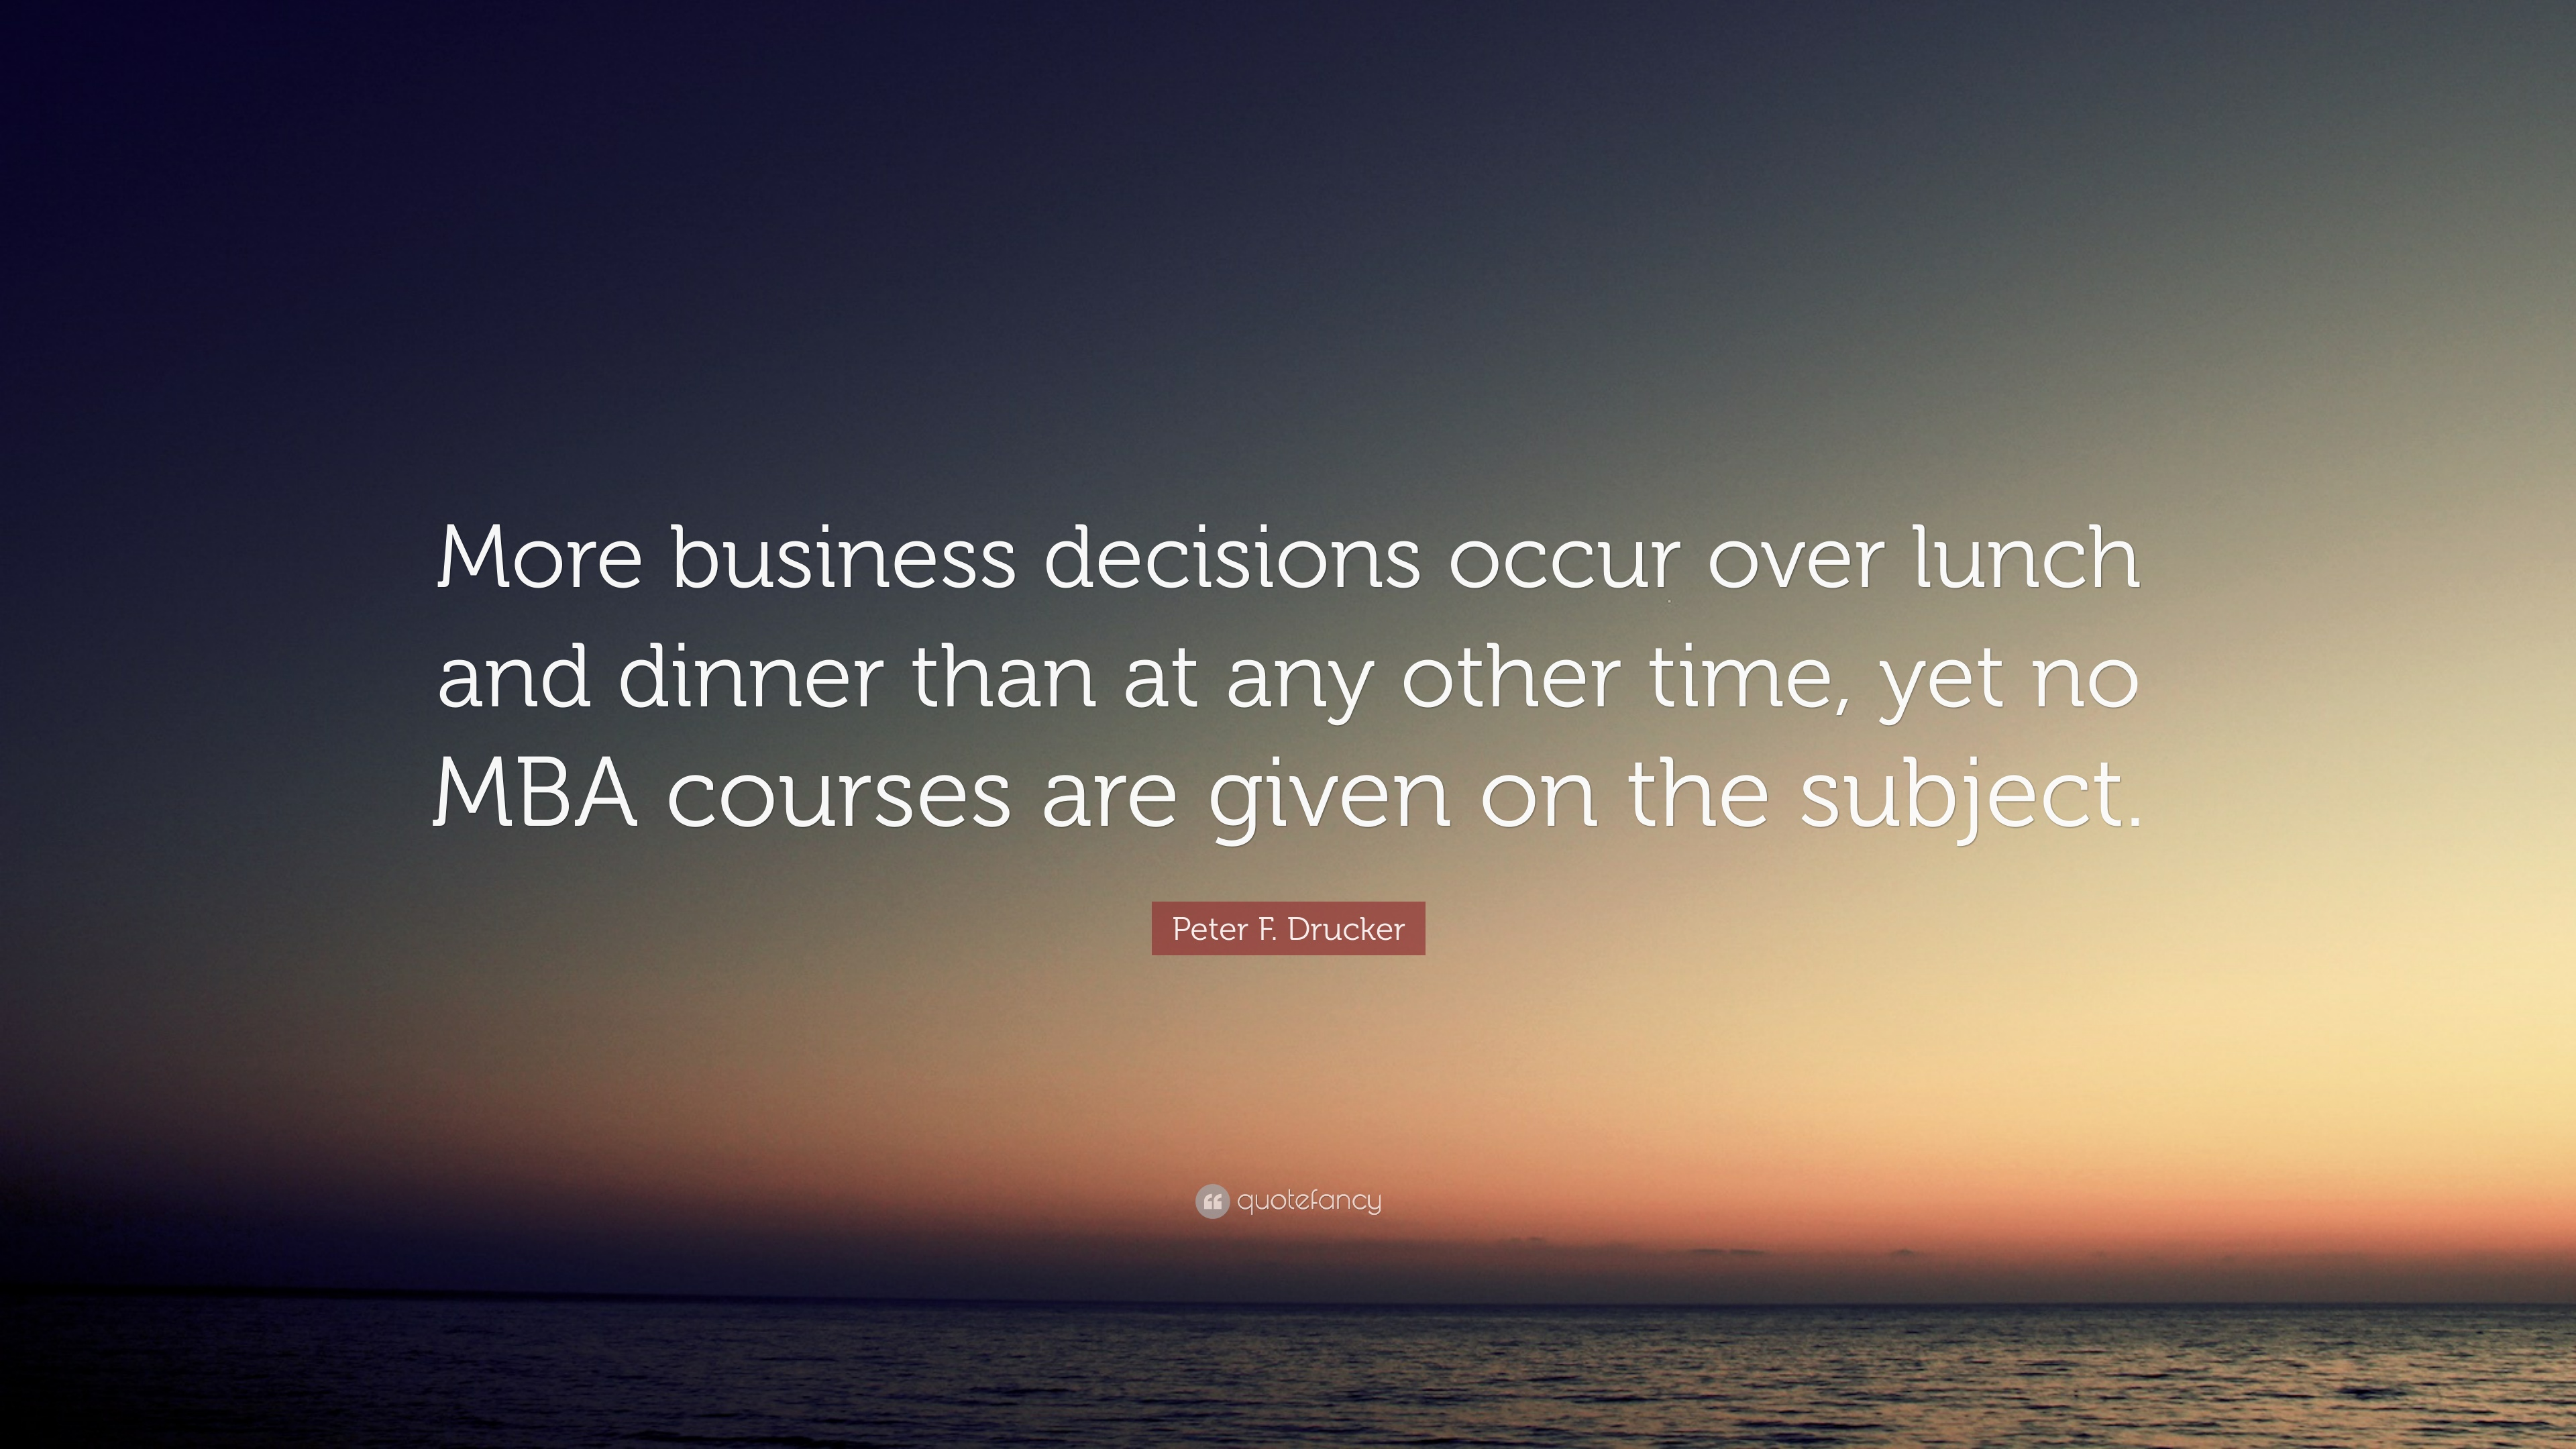 Lunch Time Quotes